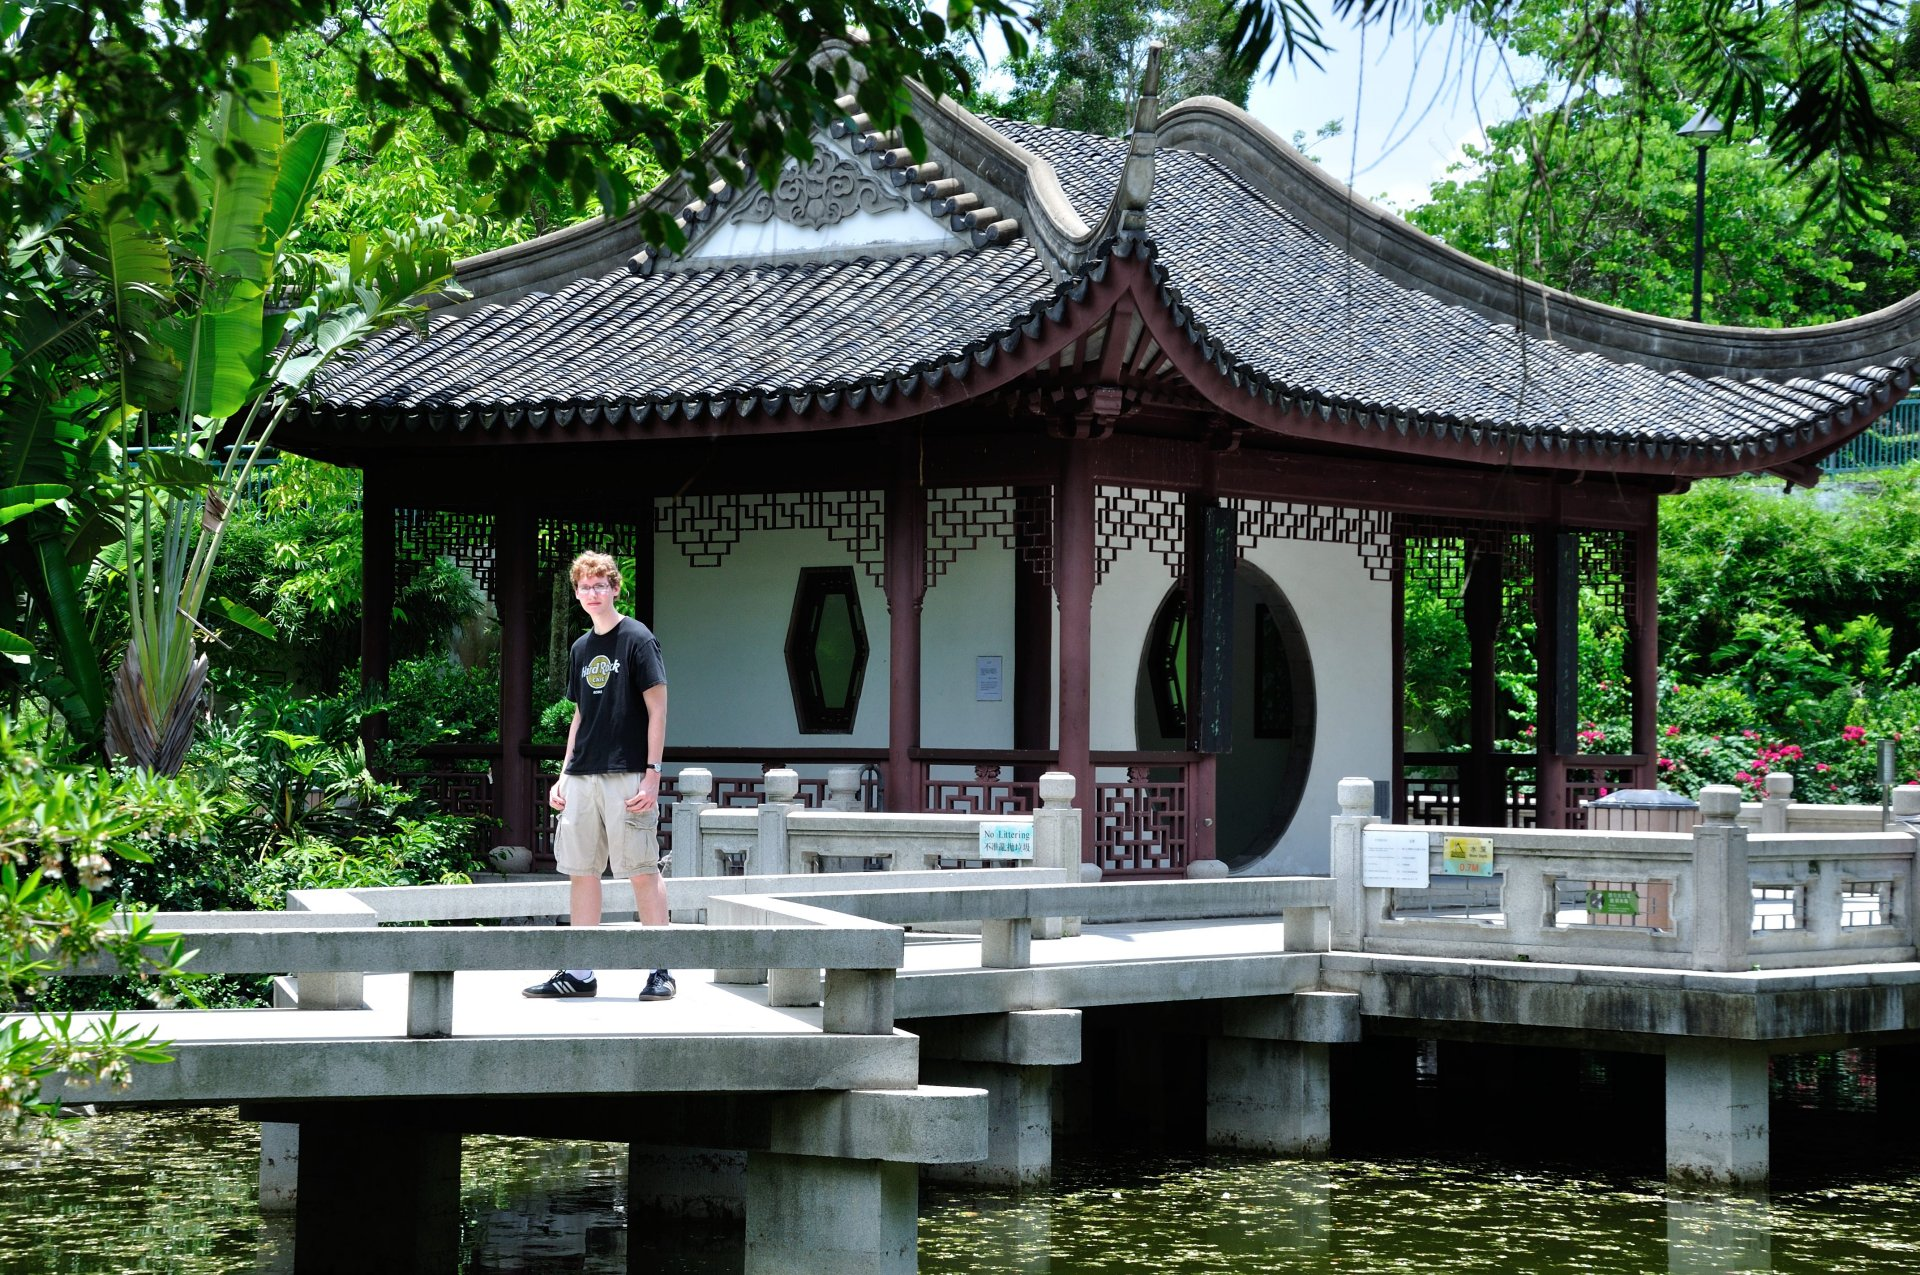 Kevin in Kowloon Walled City Park